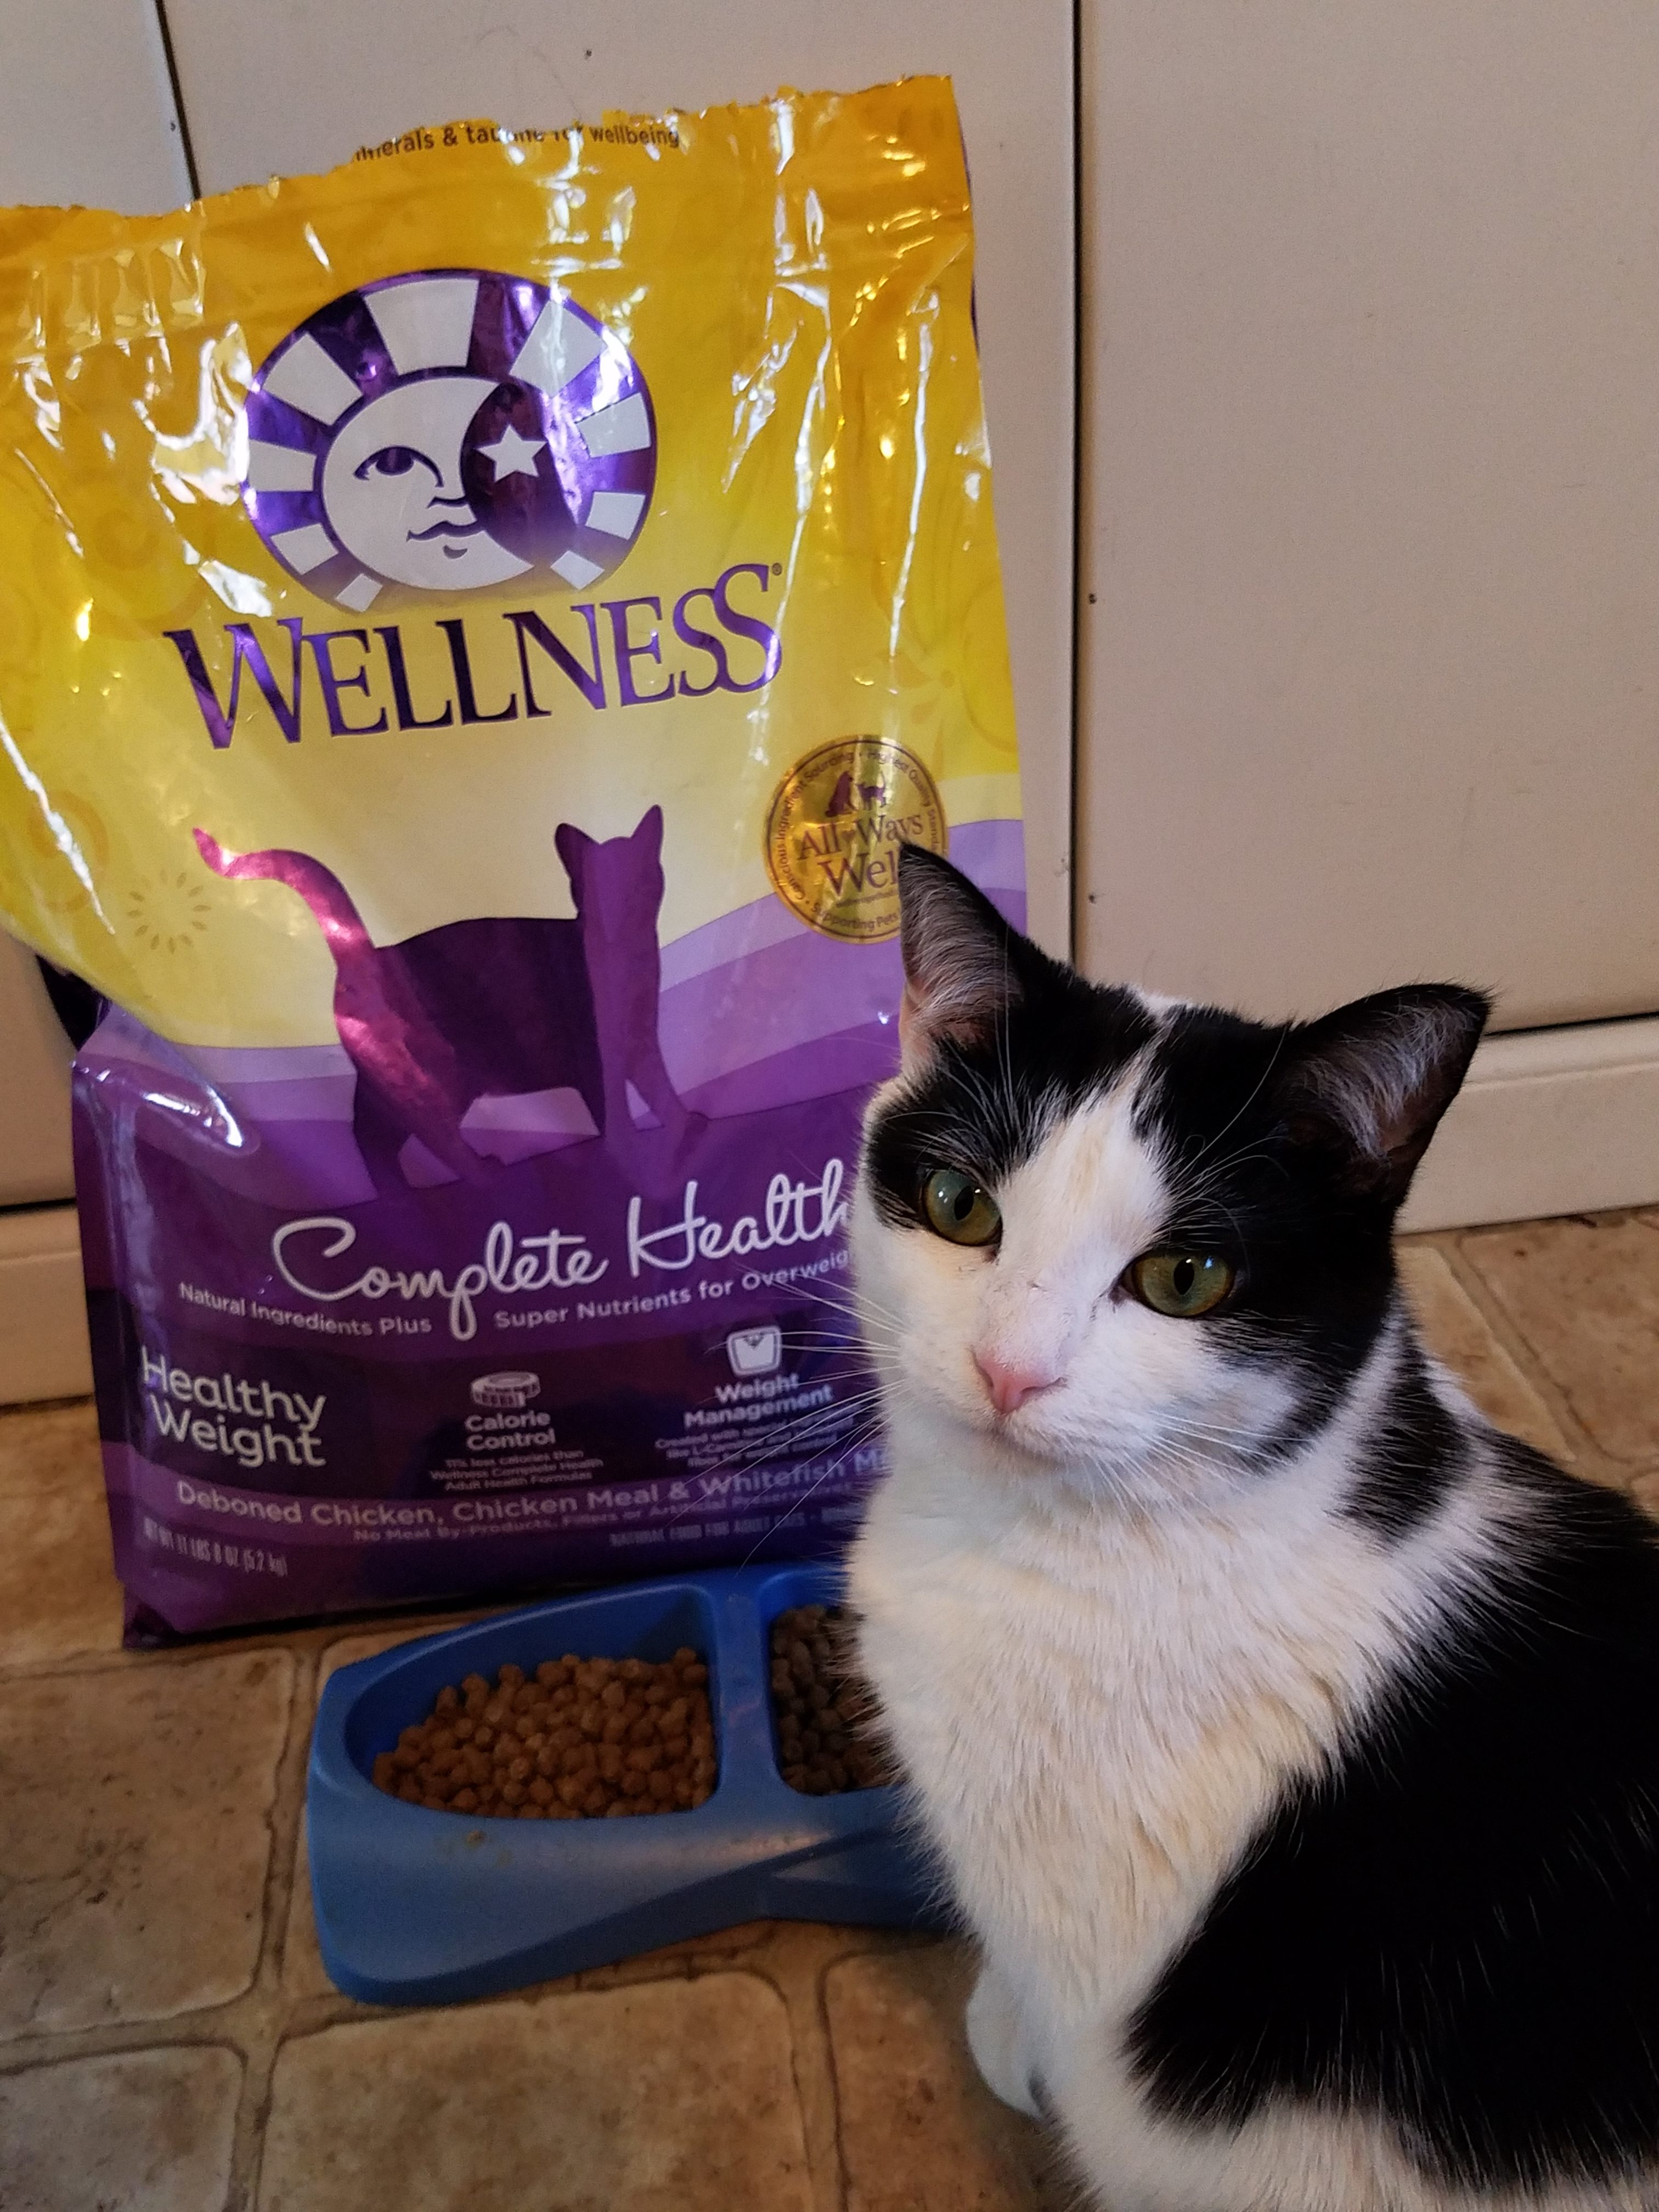 I love my cats and I want only the very best for them. Wellness brand cat food is grain free and offers complete health